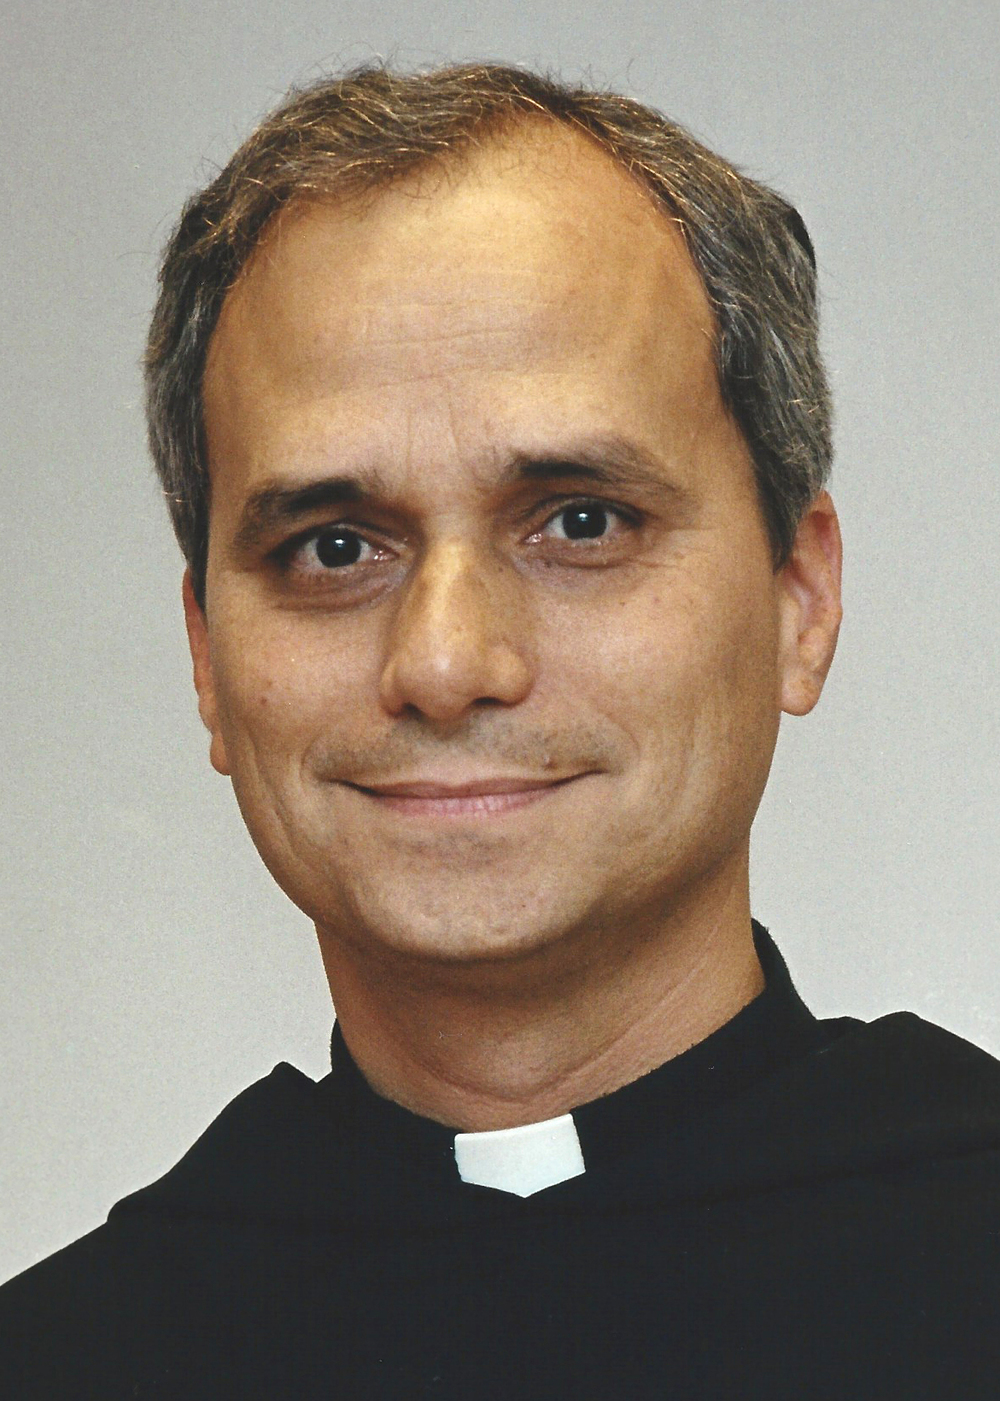 Fr. Robert Prevost, O.S.A., served as the Prior General, or worldwide leader, of the Augustinians from 2001-2013.  He currently serves as the Director of Formation for the Augustinians in North America, and the Vicar Provincial/First Counselor of the Augustinians' Midwest Province